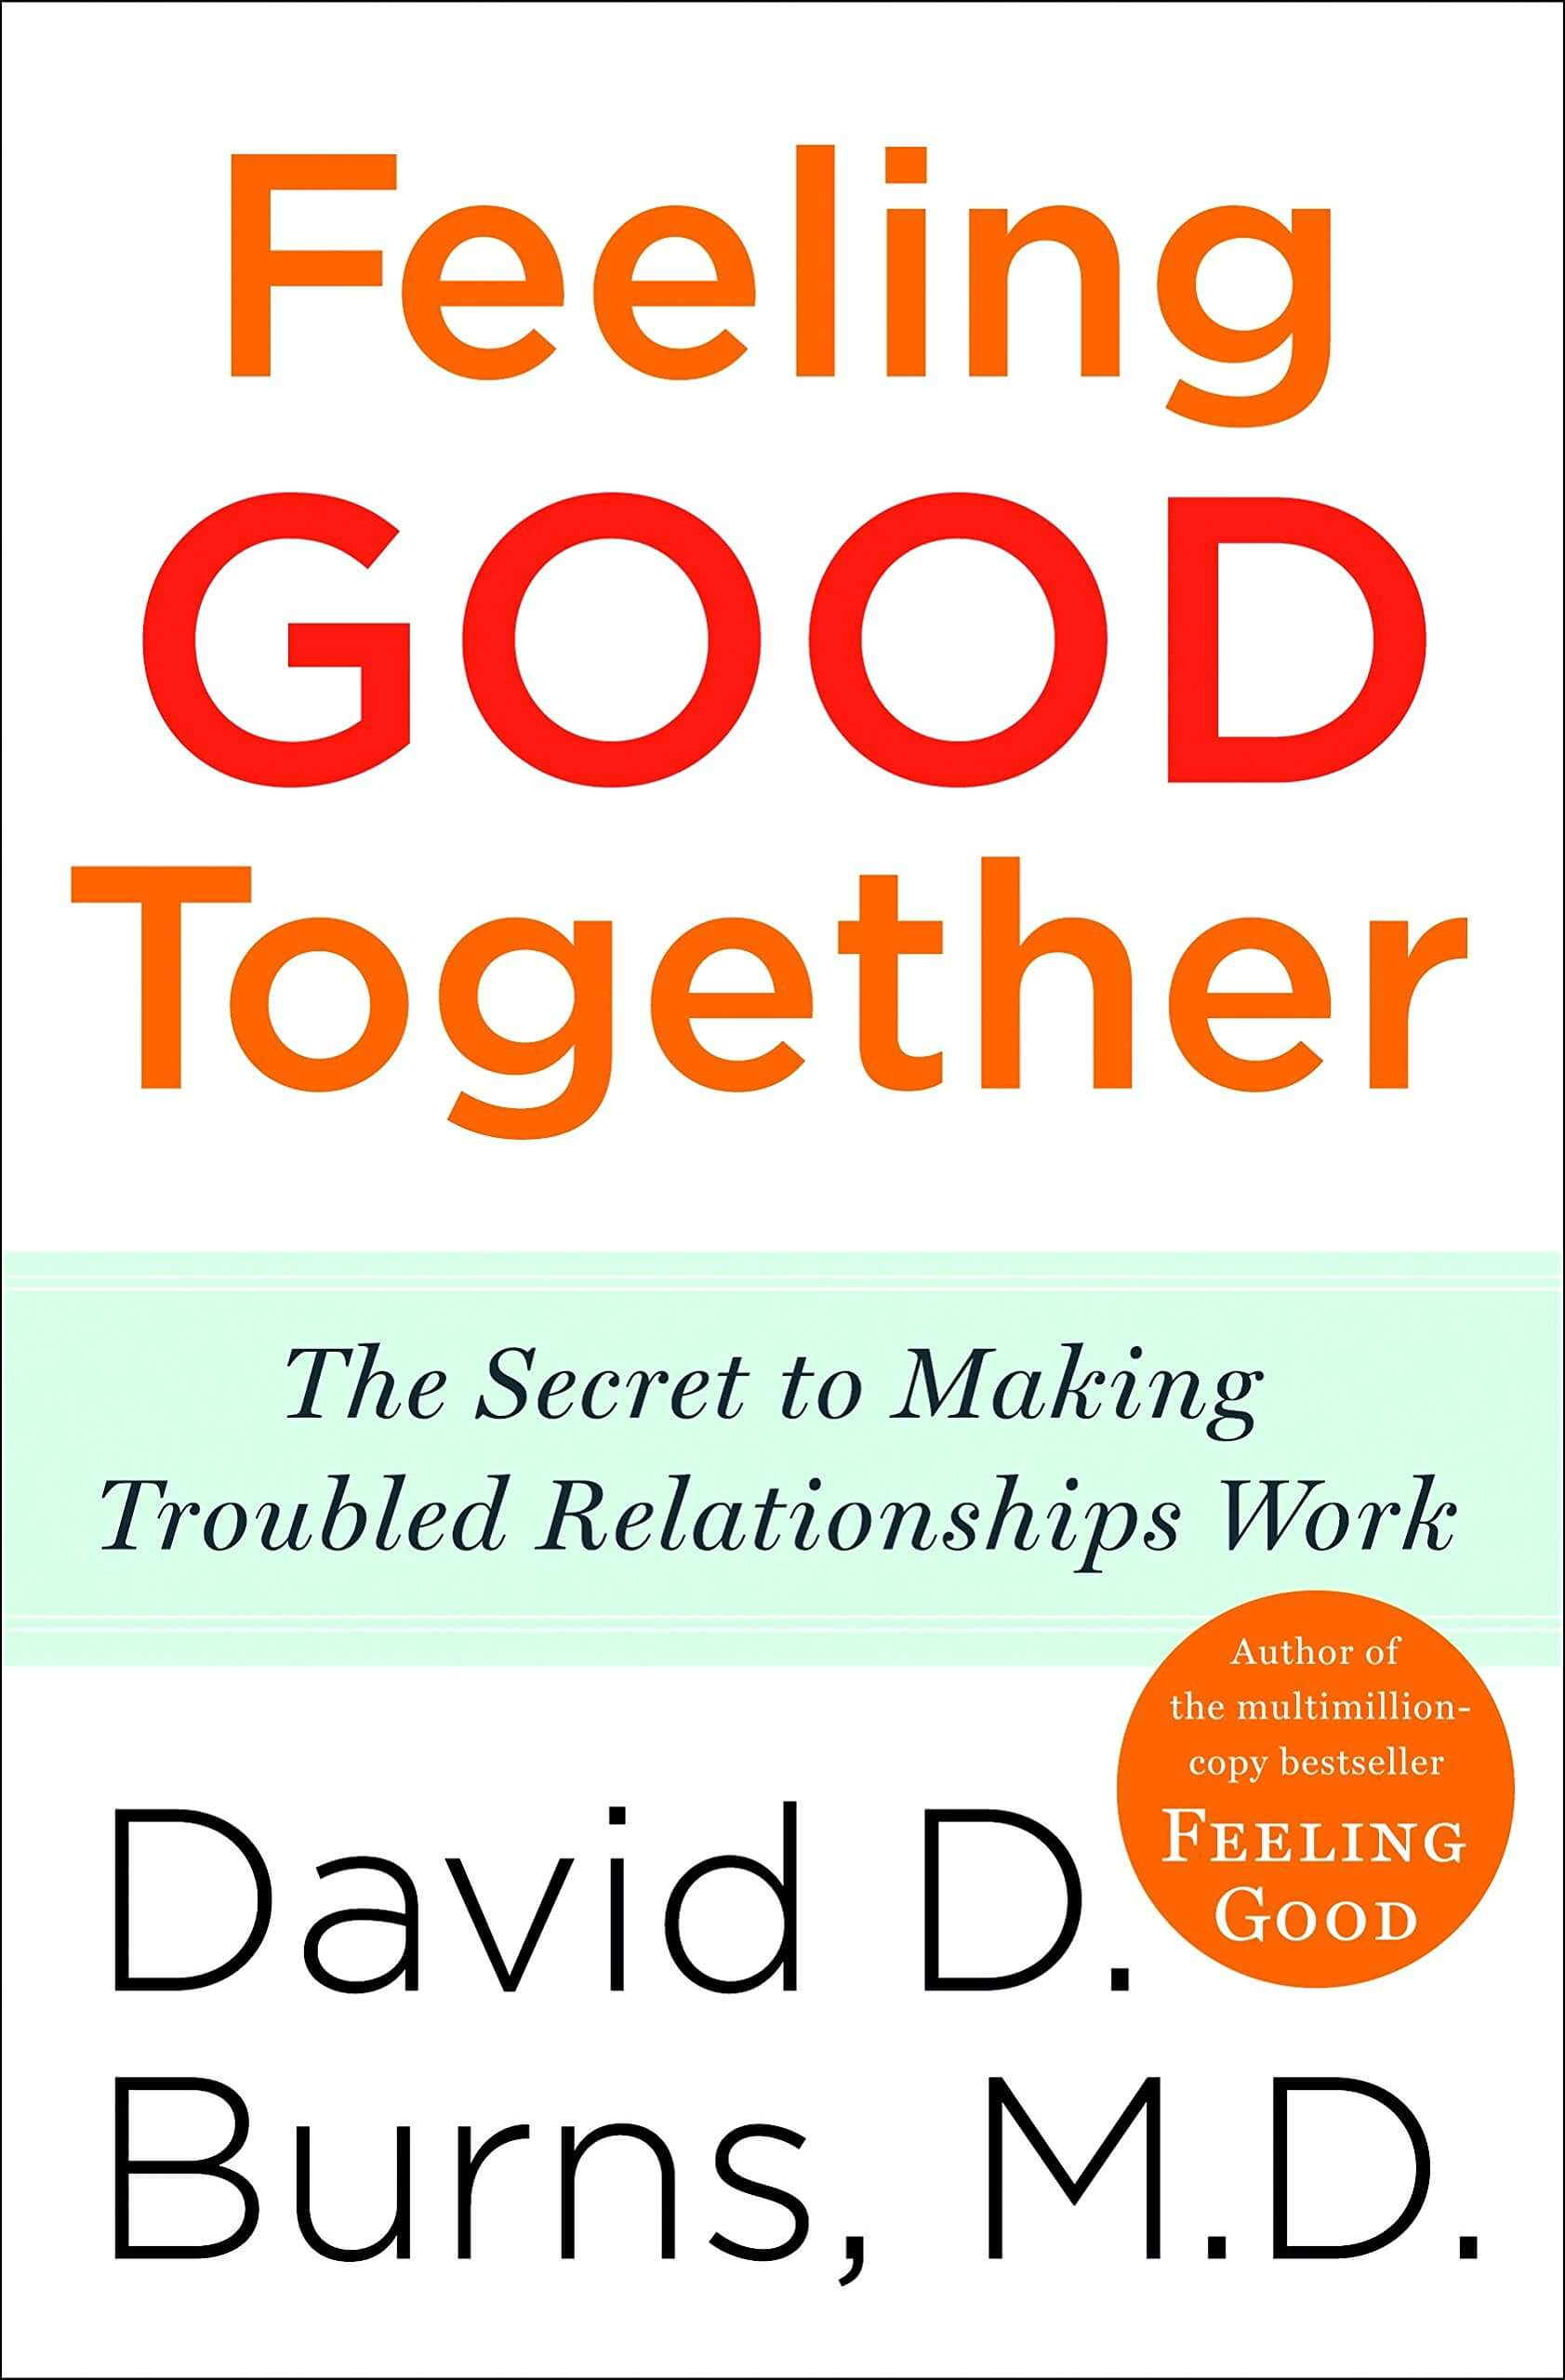 Book cover of feeling good together: The secret to making troubled relationships work by David Burns